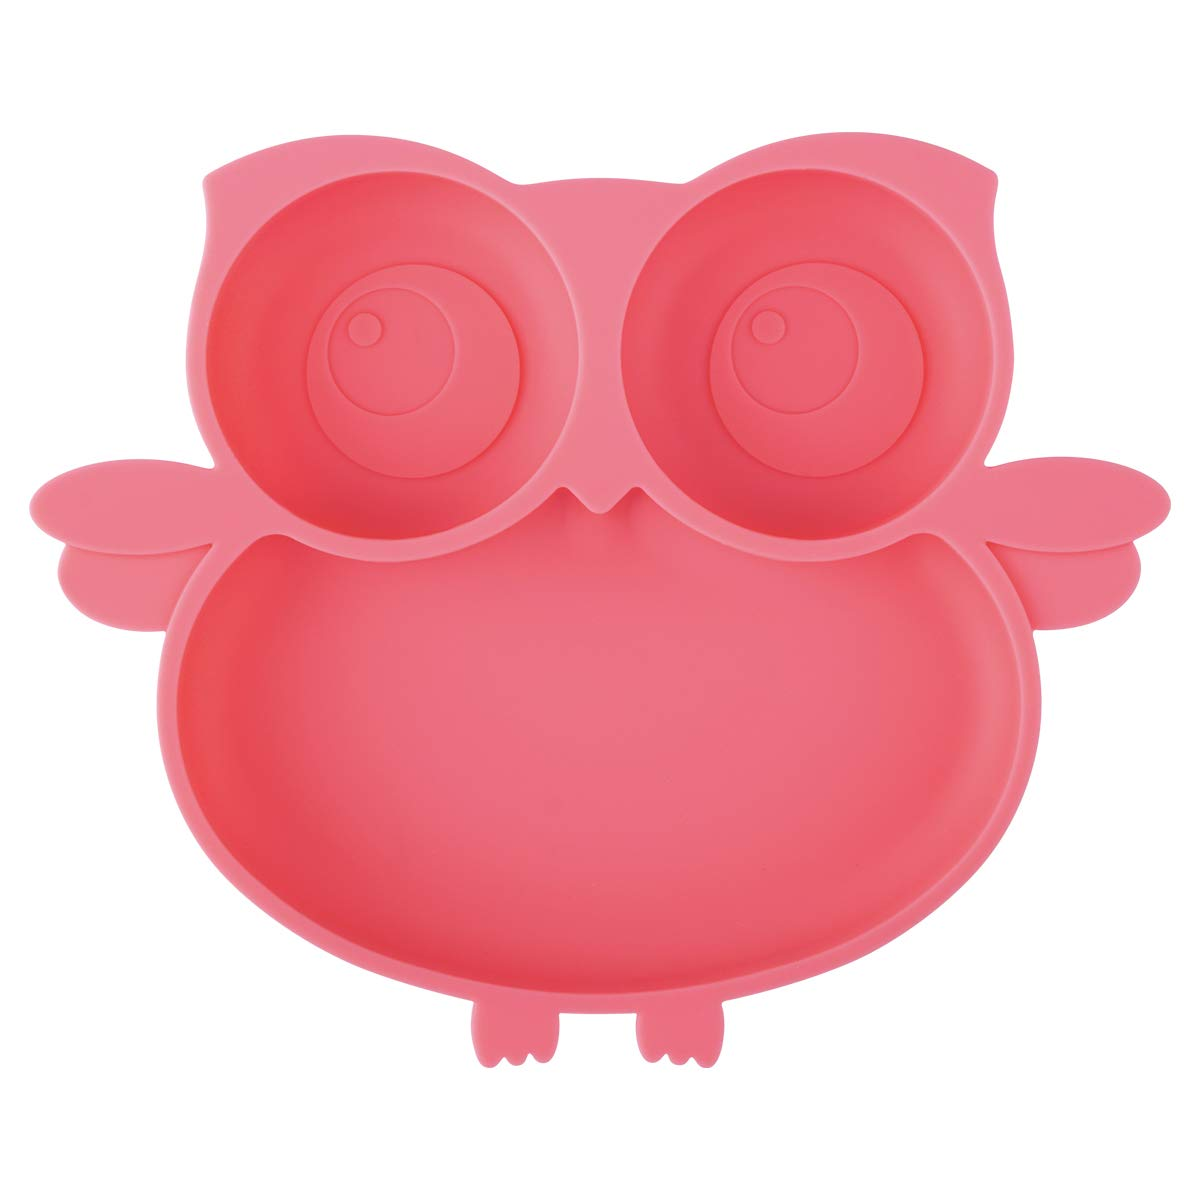 Kirecoo Owl Suction Silicone Plate for Toddlers - Self Feeding Training Storage Divided Bowl and Dishes for Baby and Kids, Fits for Most Hairchairs Trays, BPA Free Microwave Dishwasher Safe (Pink)